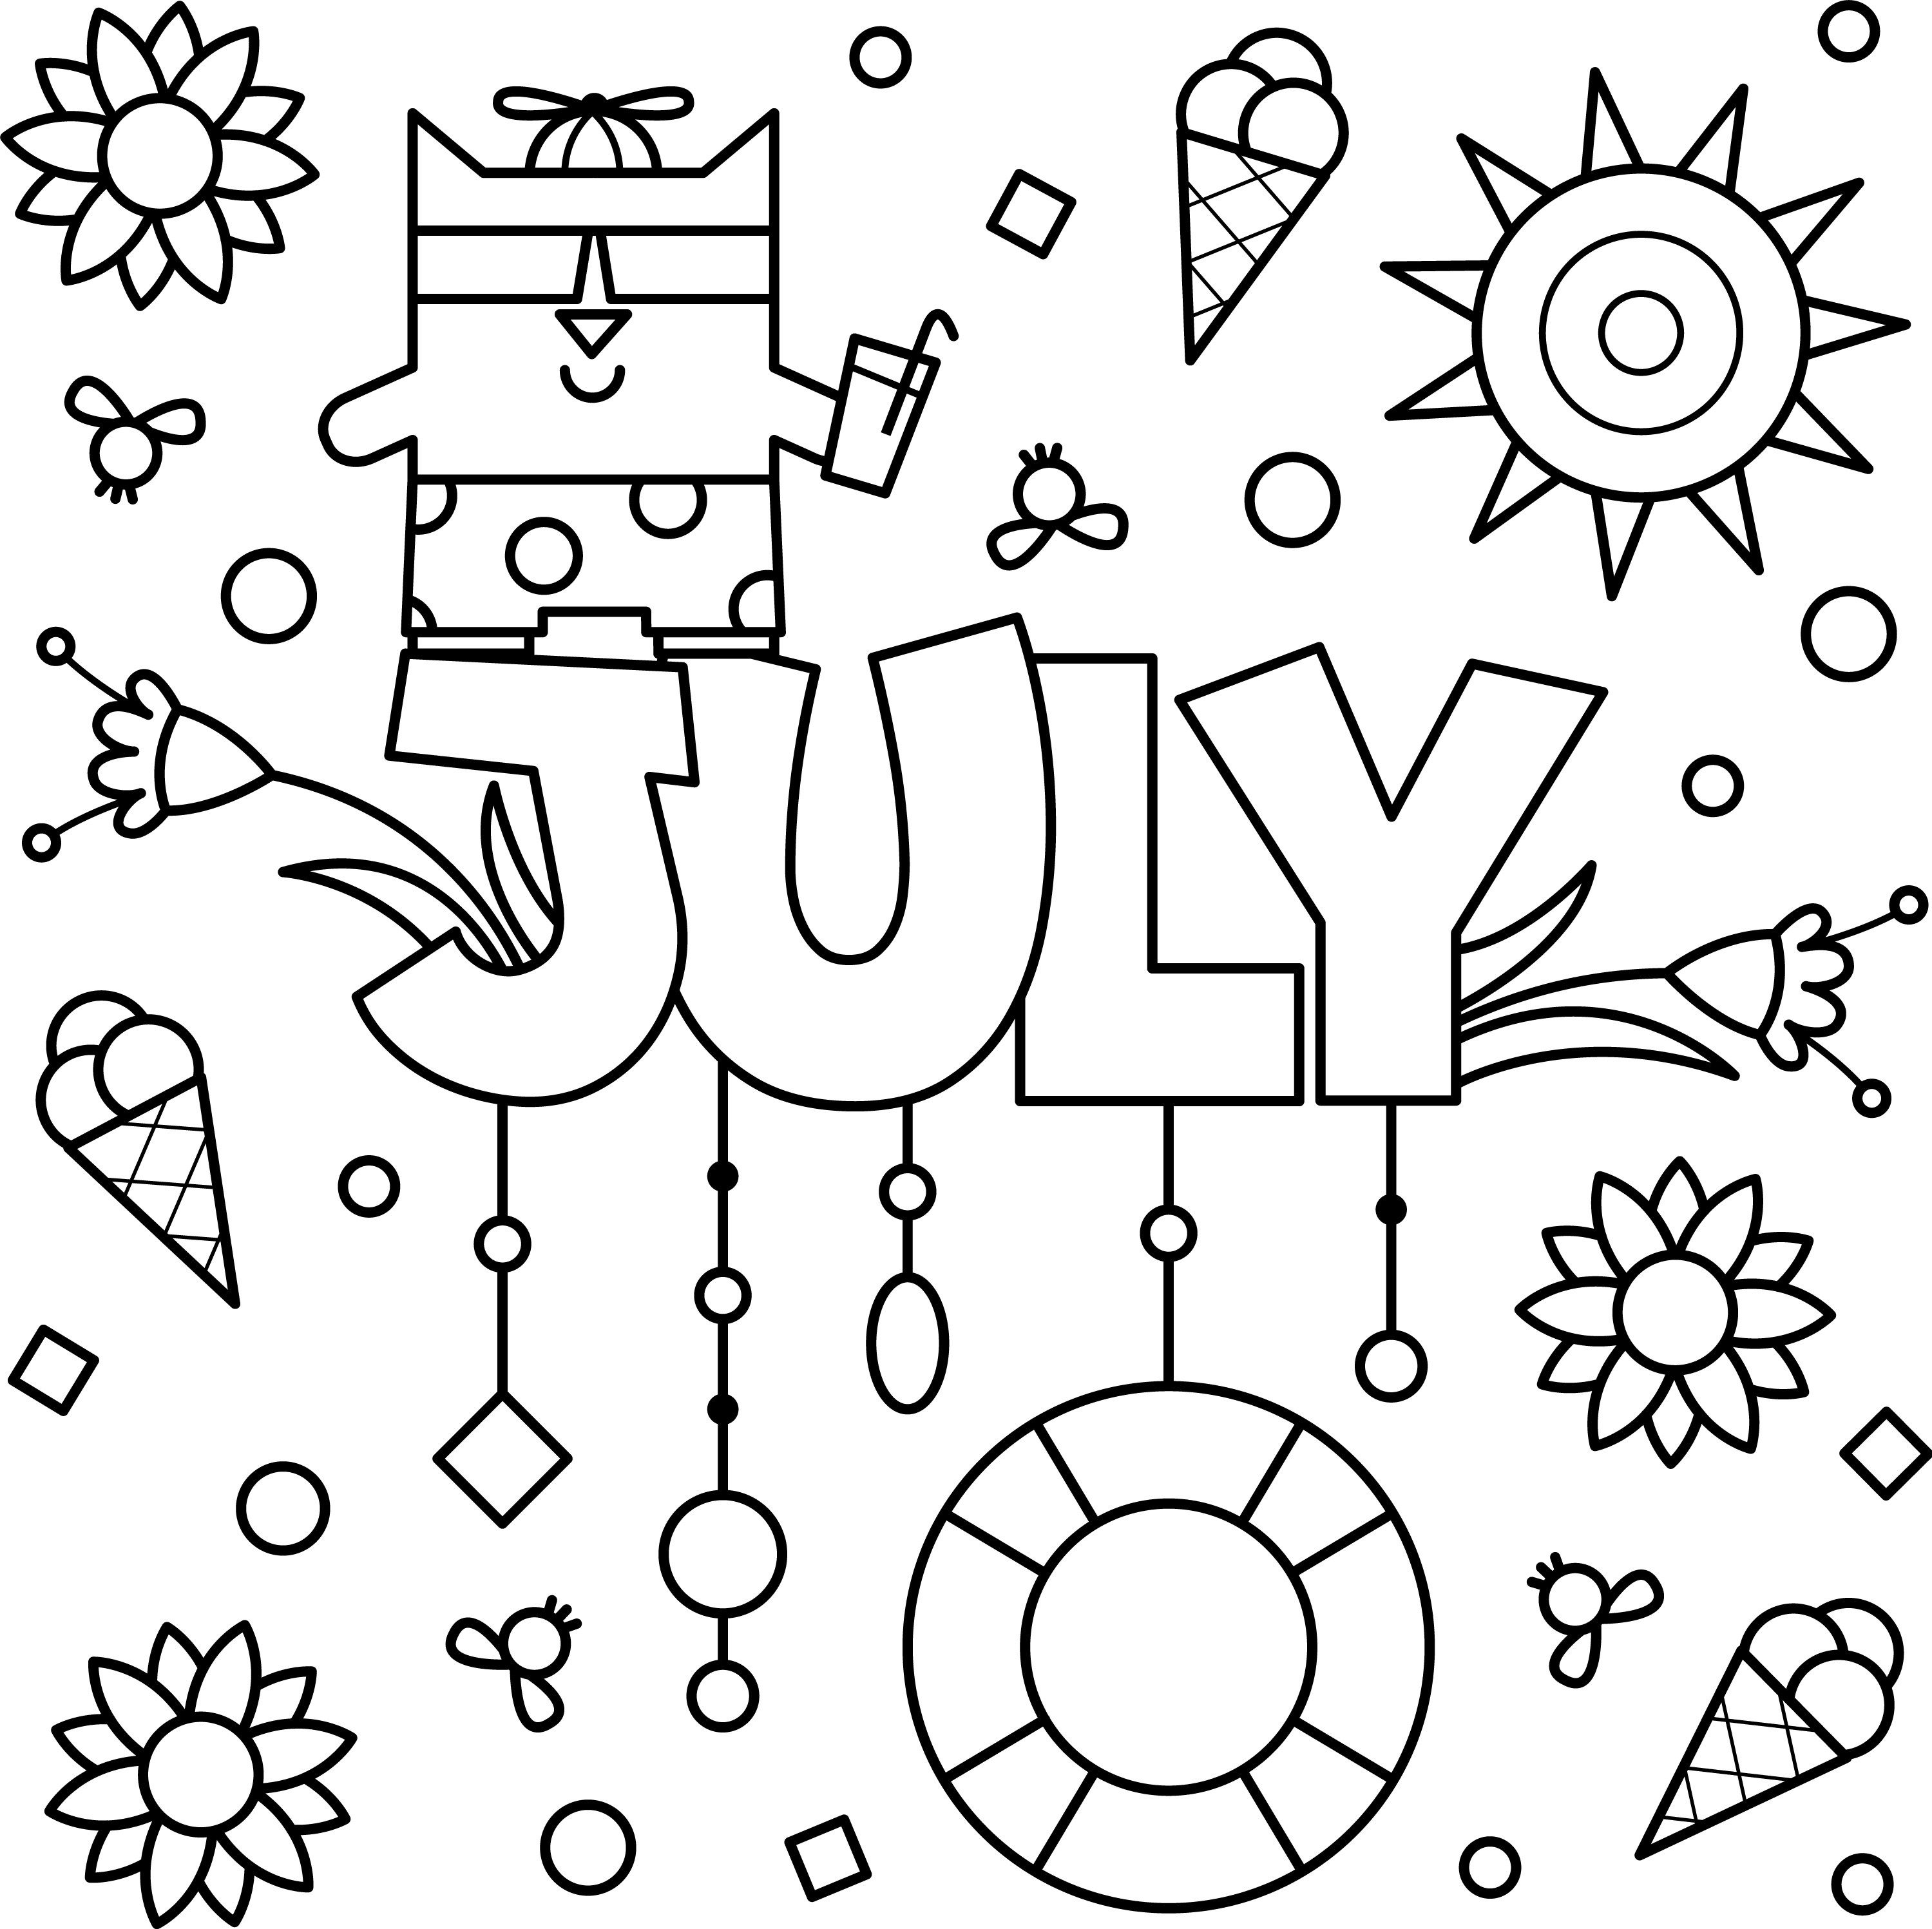 happy 13th birthday coloring pages happy birthday coloring pages happy birthday coloring 13th birthday pages happy coloring